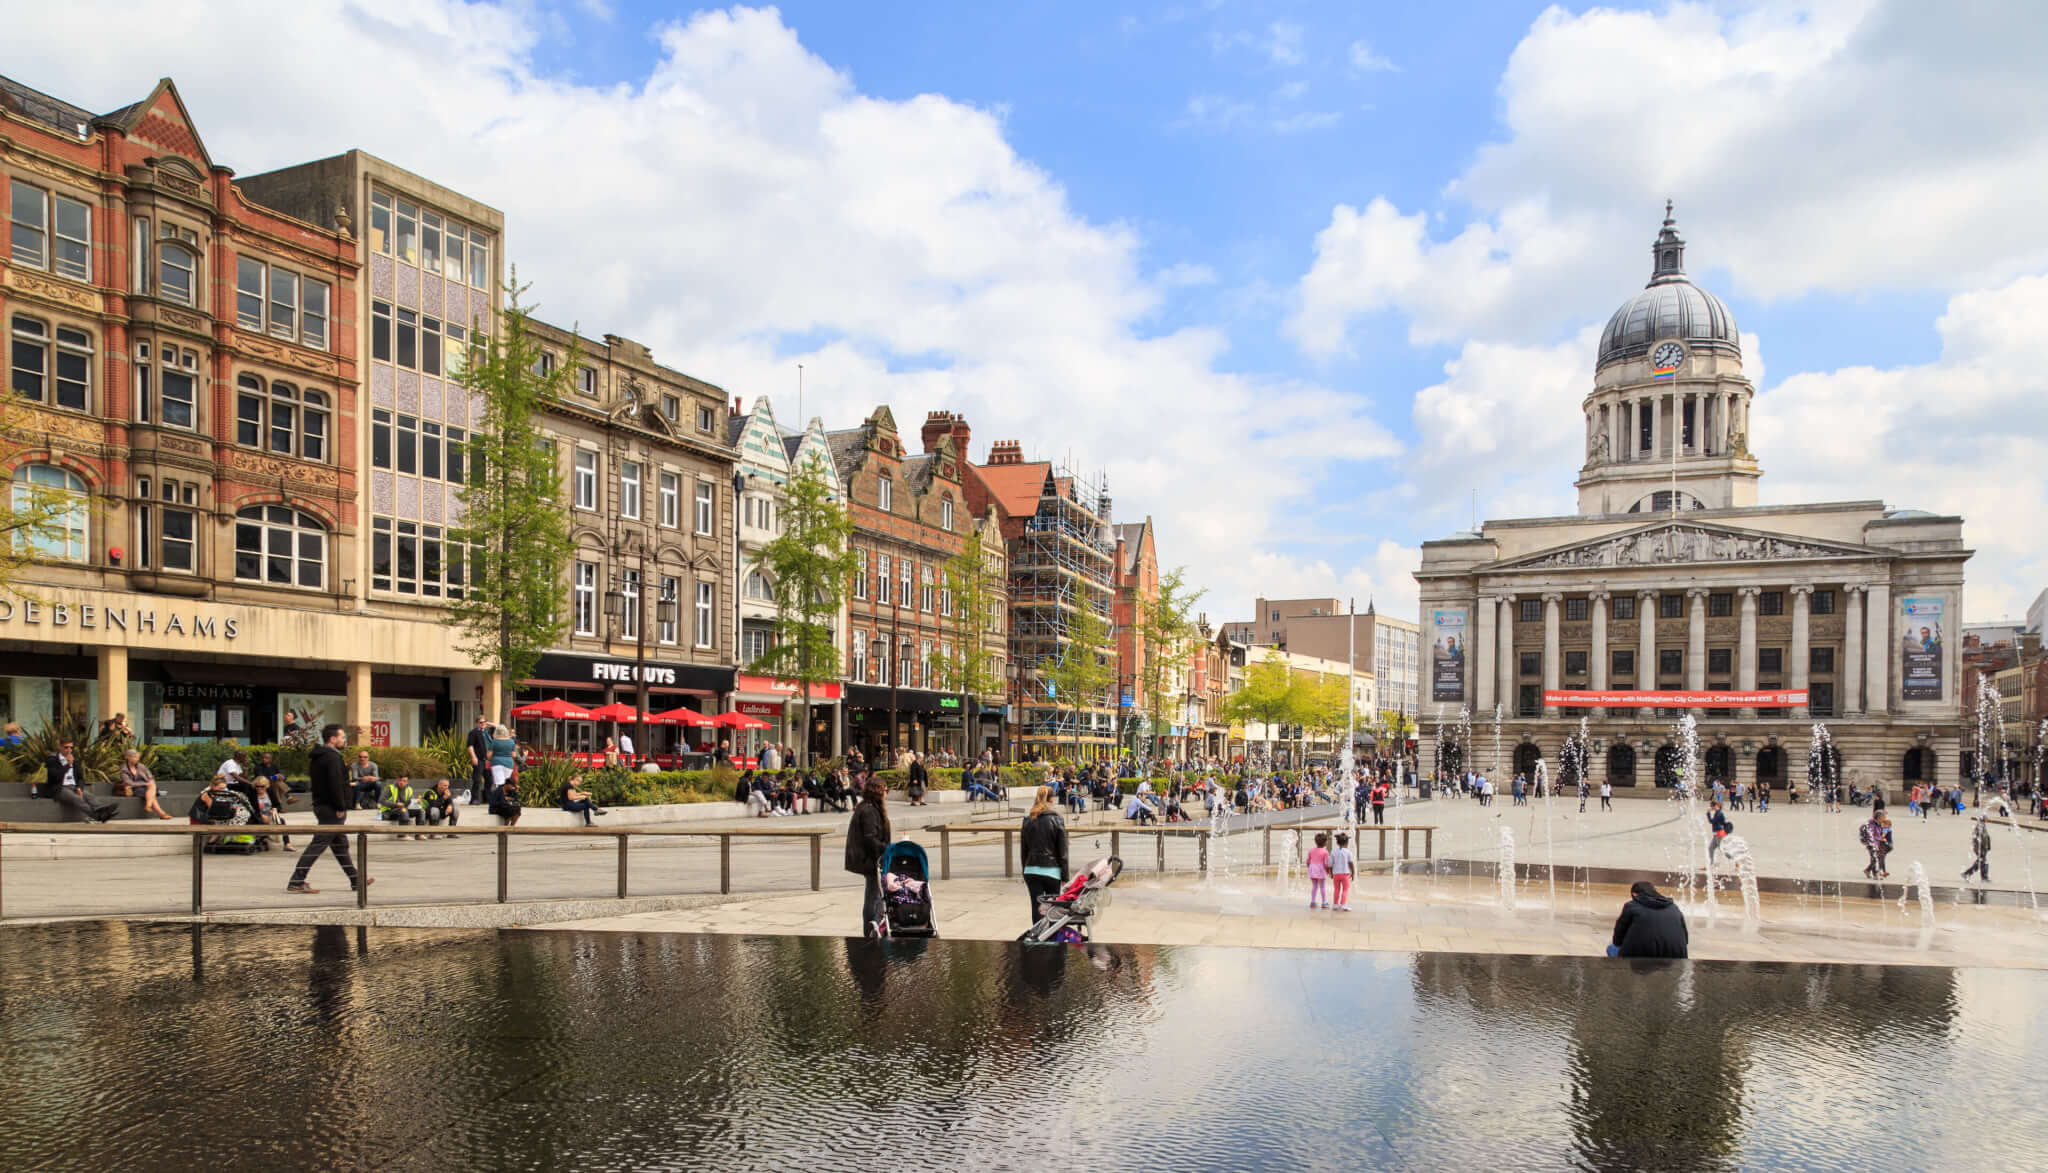 Rent to Rent in Nottingham, UK by Capitum Investments LTD